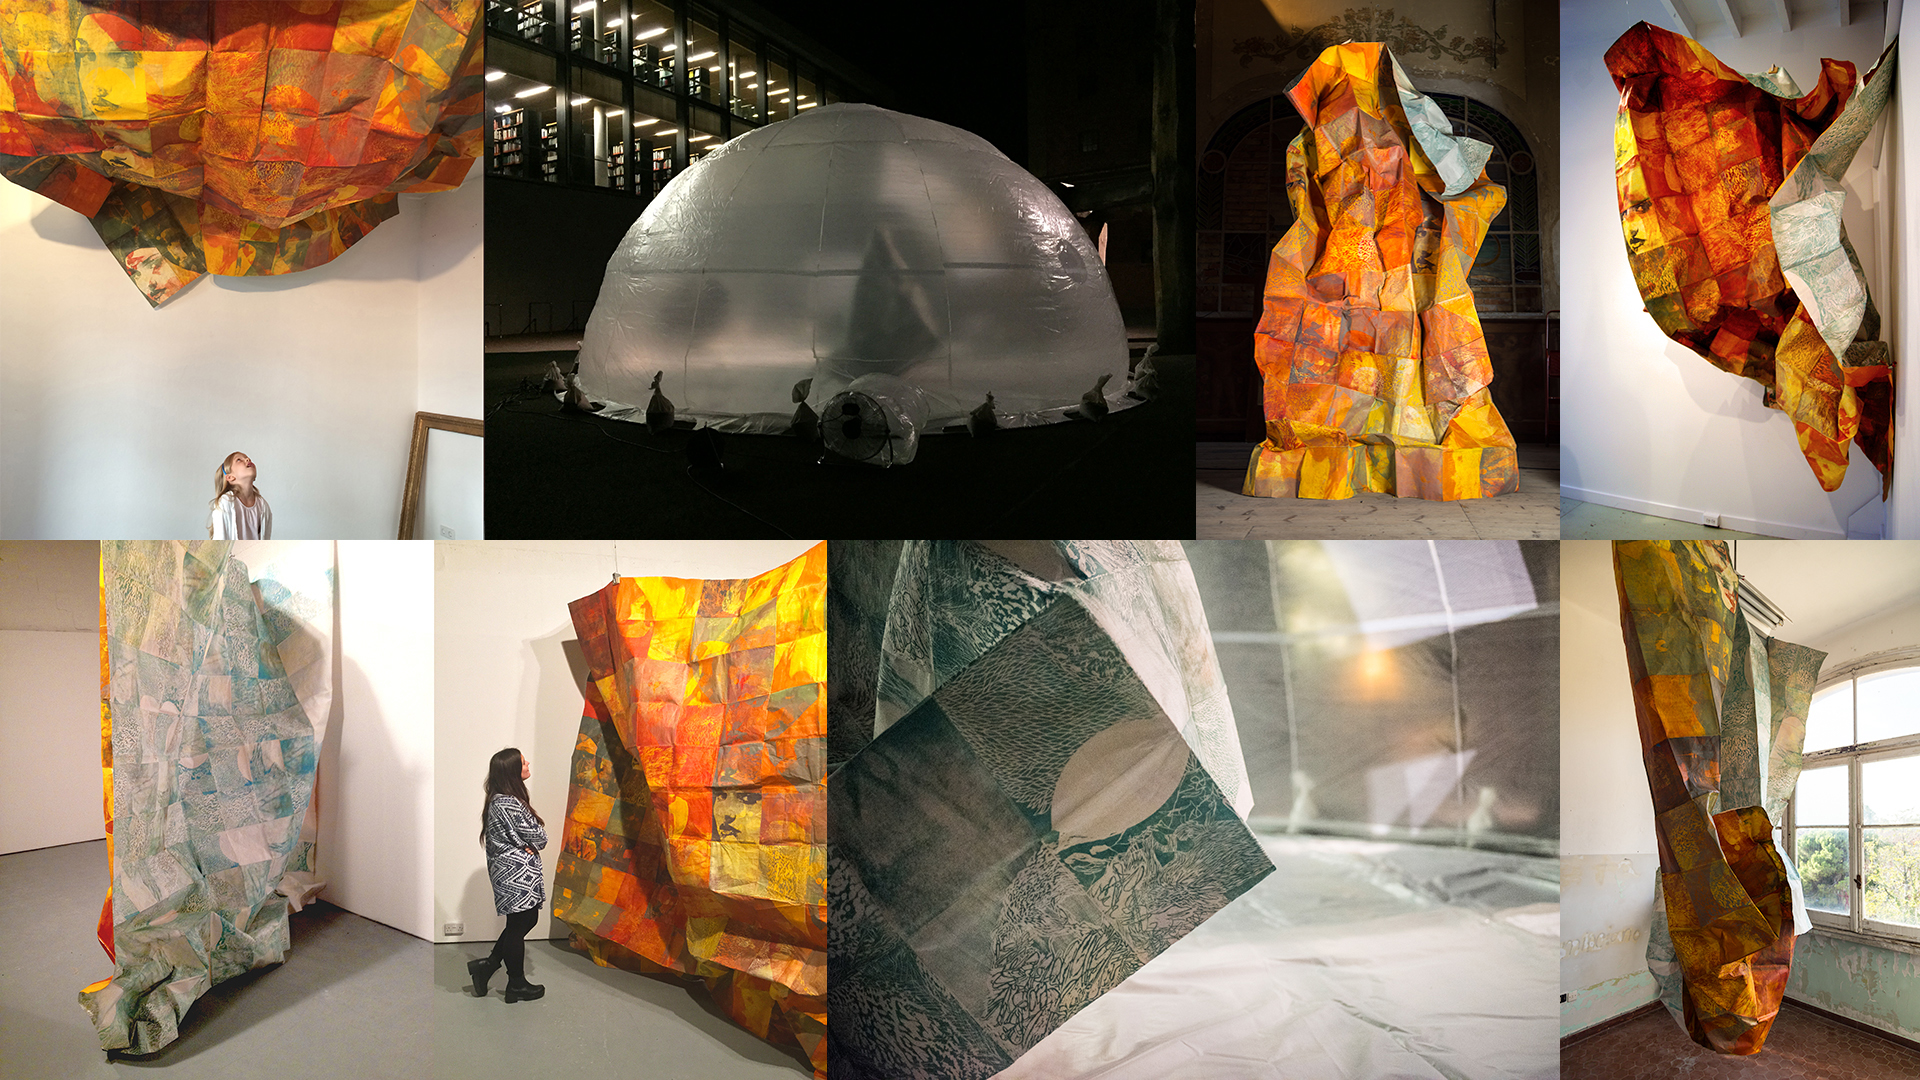 Clockwise from top left: Werkstadt Berlin; Inside Nomadic Atelier in Weimar; On stage at Teatro Marinoni; at CR Ettinger Studio Philadelphia; Director's office at Marinoni; Close-up inside Nomadic Atelier; Two views at GENERATORprojects Dundee